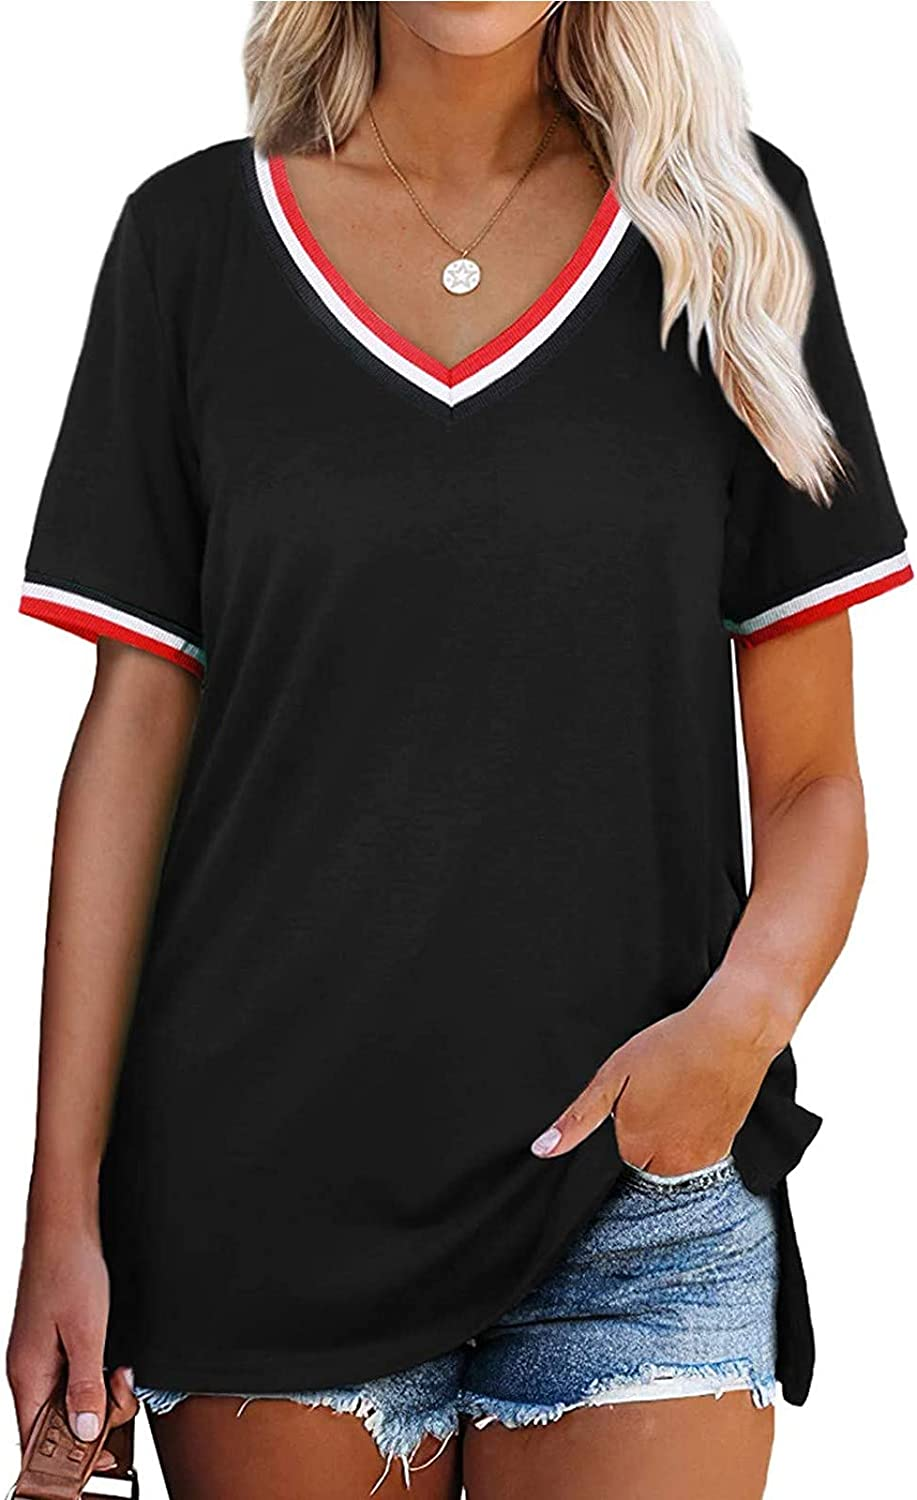 Womens T Shirts Summer Casual Loose Fit V Neck Tops Side Split Short Sleeve Tee Shirts Tunic Tops